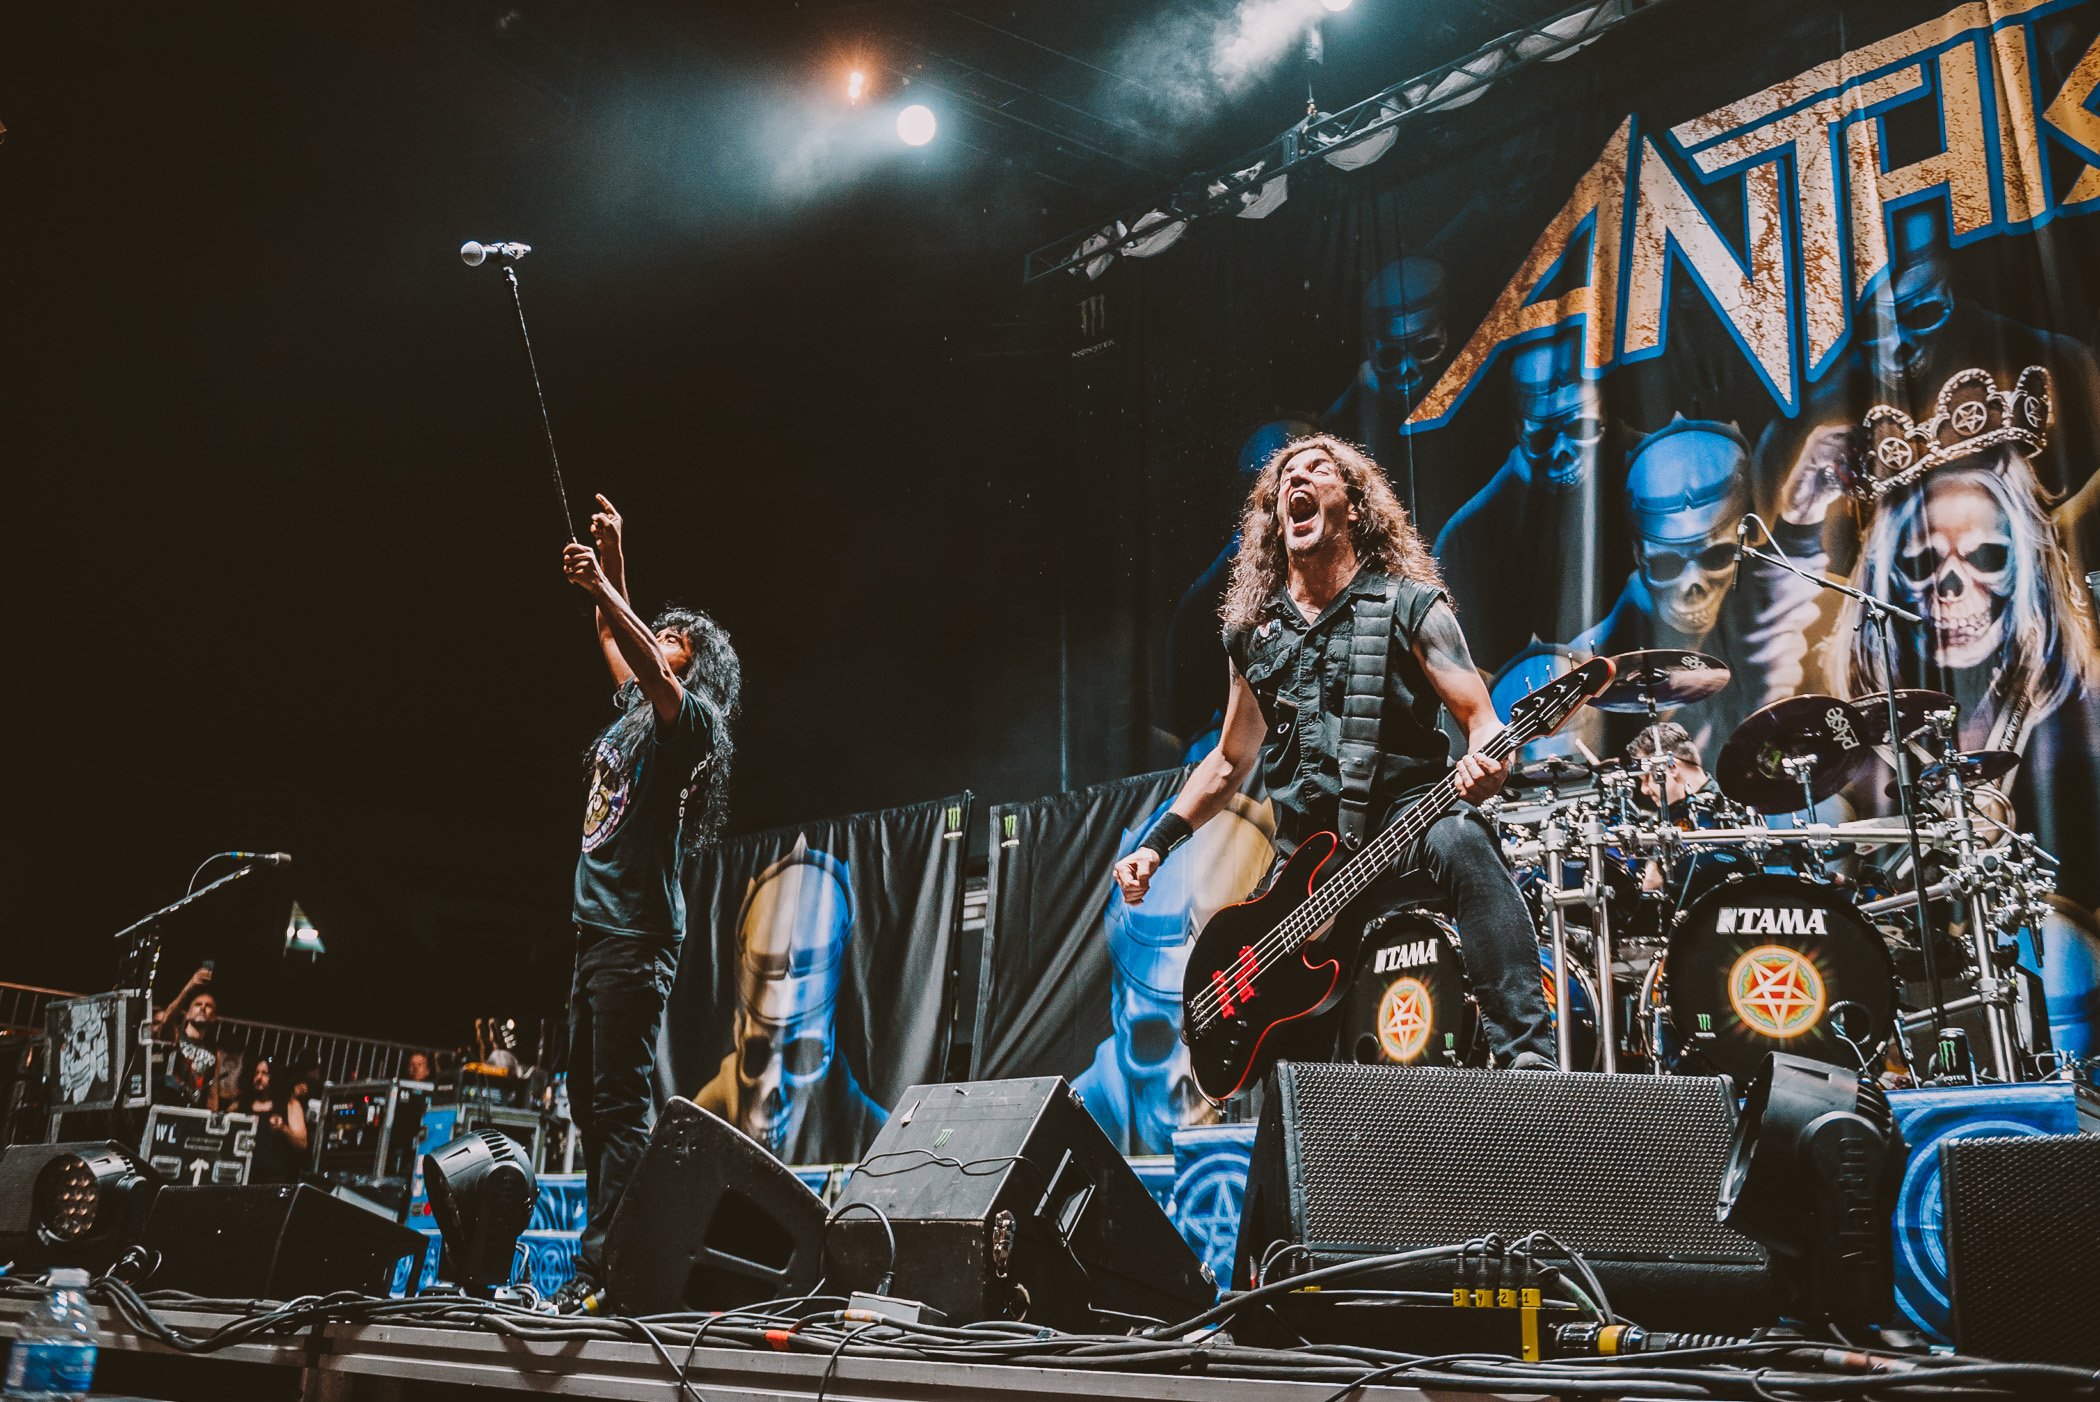 3_Anthrax-Pacific_Coliseum-Timothy_Nguyen-20180516-26.jpg